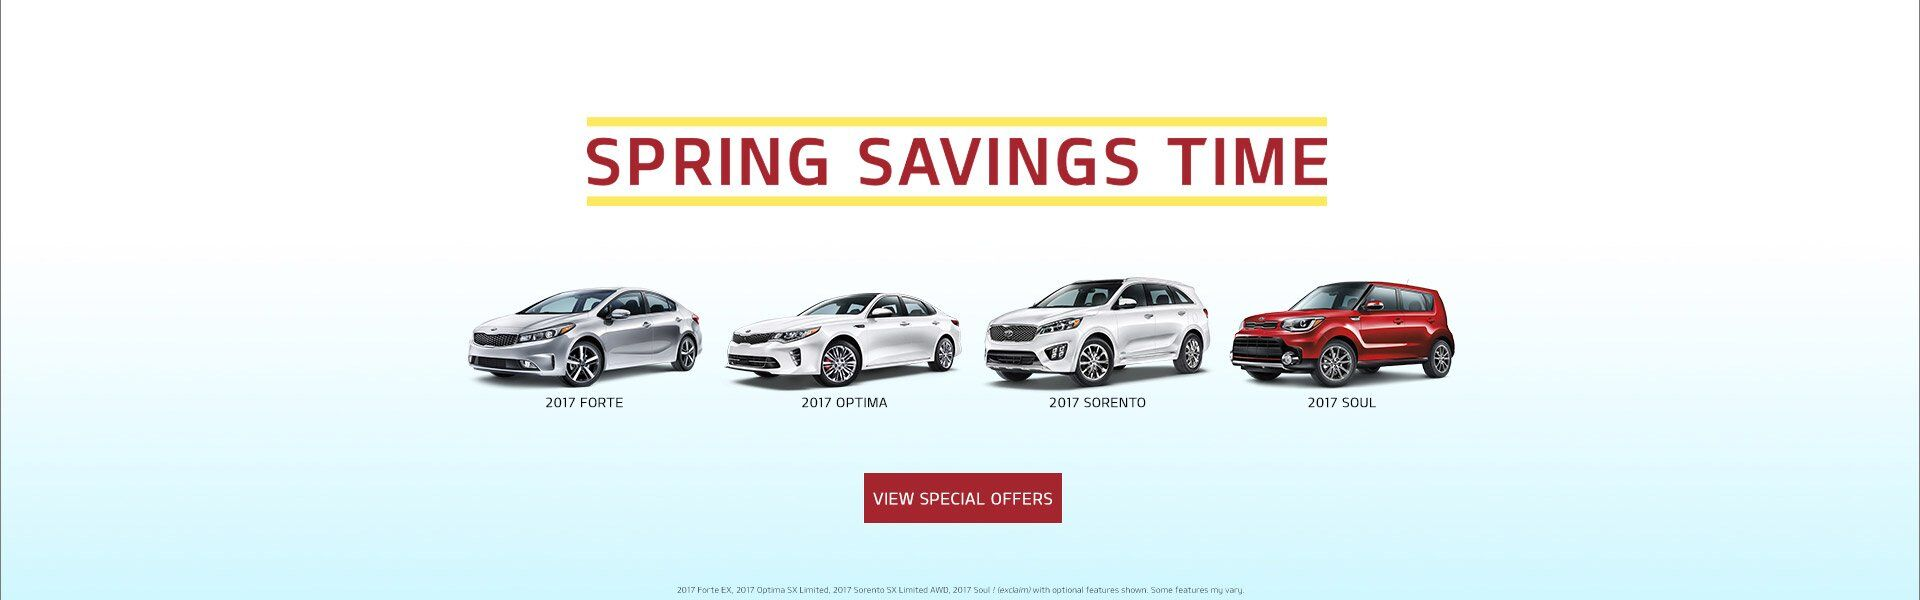 Spring Savings Time at Kia of Muncie